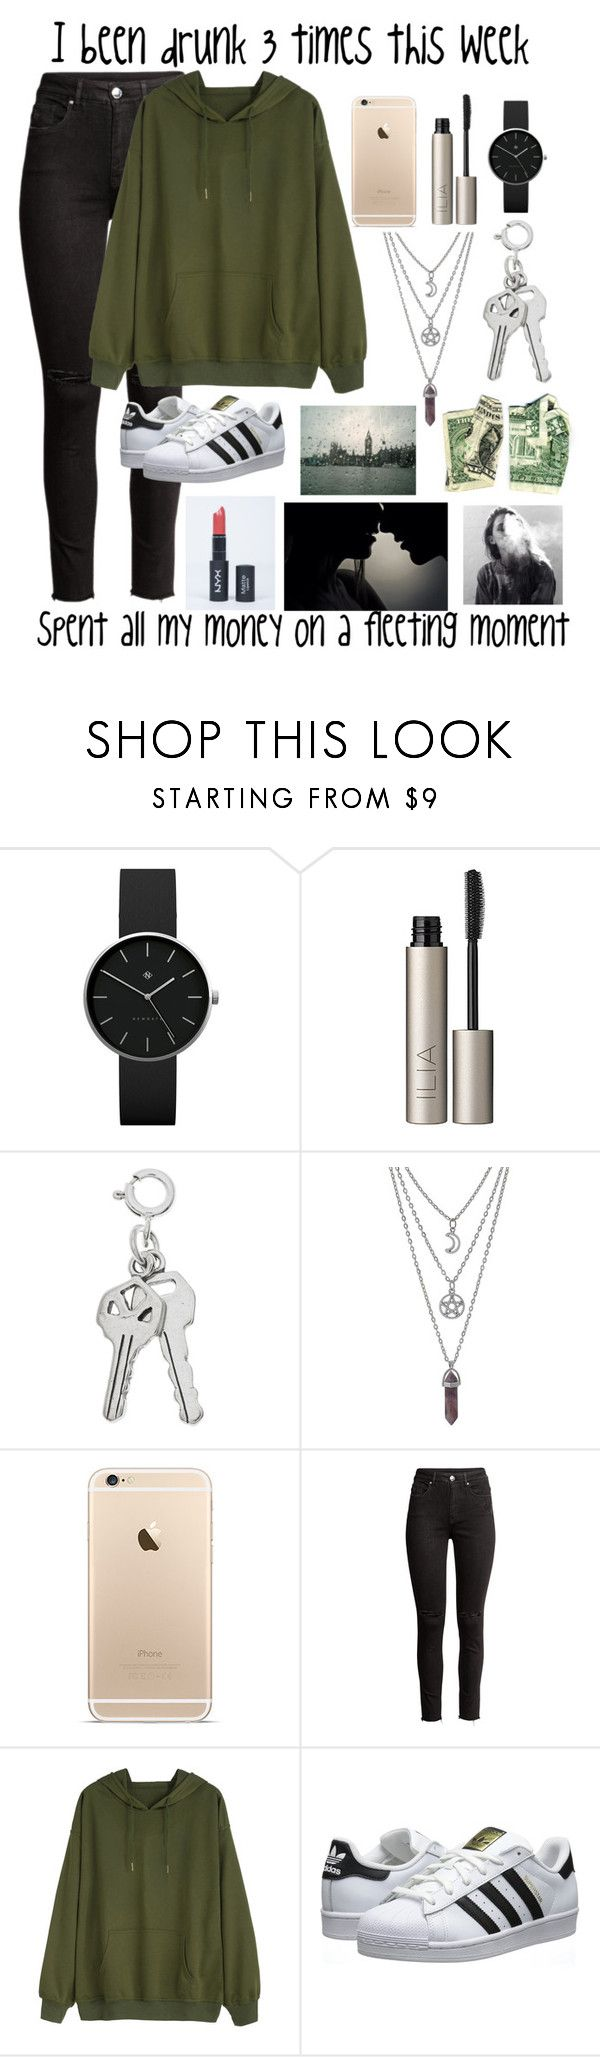 """""""Bloodstream (Read Description)"""" by mgmurray03 ❤ liked on Polyvore featuring Newgate, Ilia, H&M, adidas Originals, song, 2017, chainsmokers and bloodstream"""